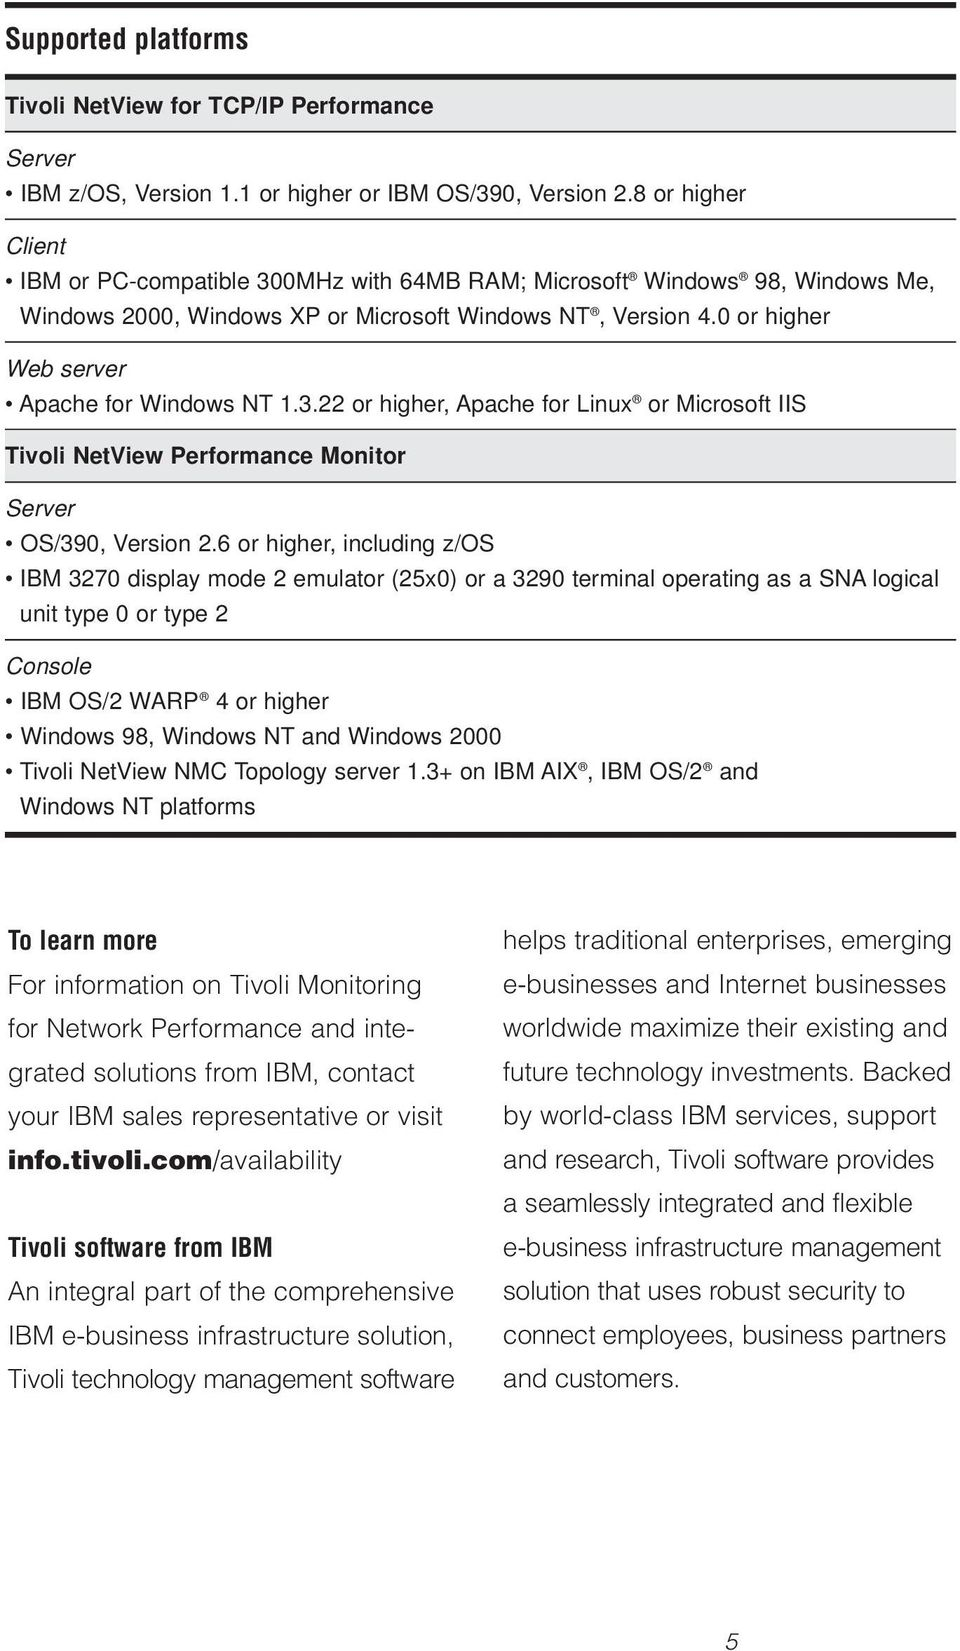 0 or higher Web server Apache for Windows NT 1.3.22 or higher, Apache for Linux or Microsoft IIS Tivoli NetView Performance Monitor Server OS/390, Version 2.